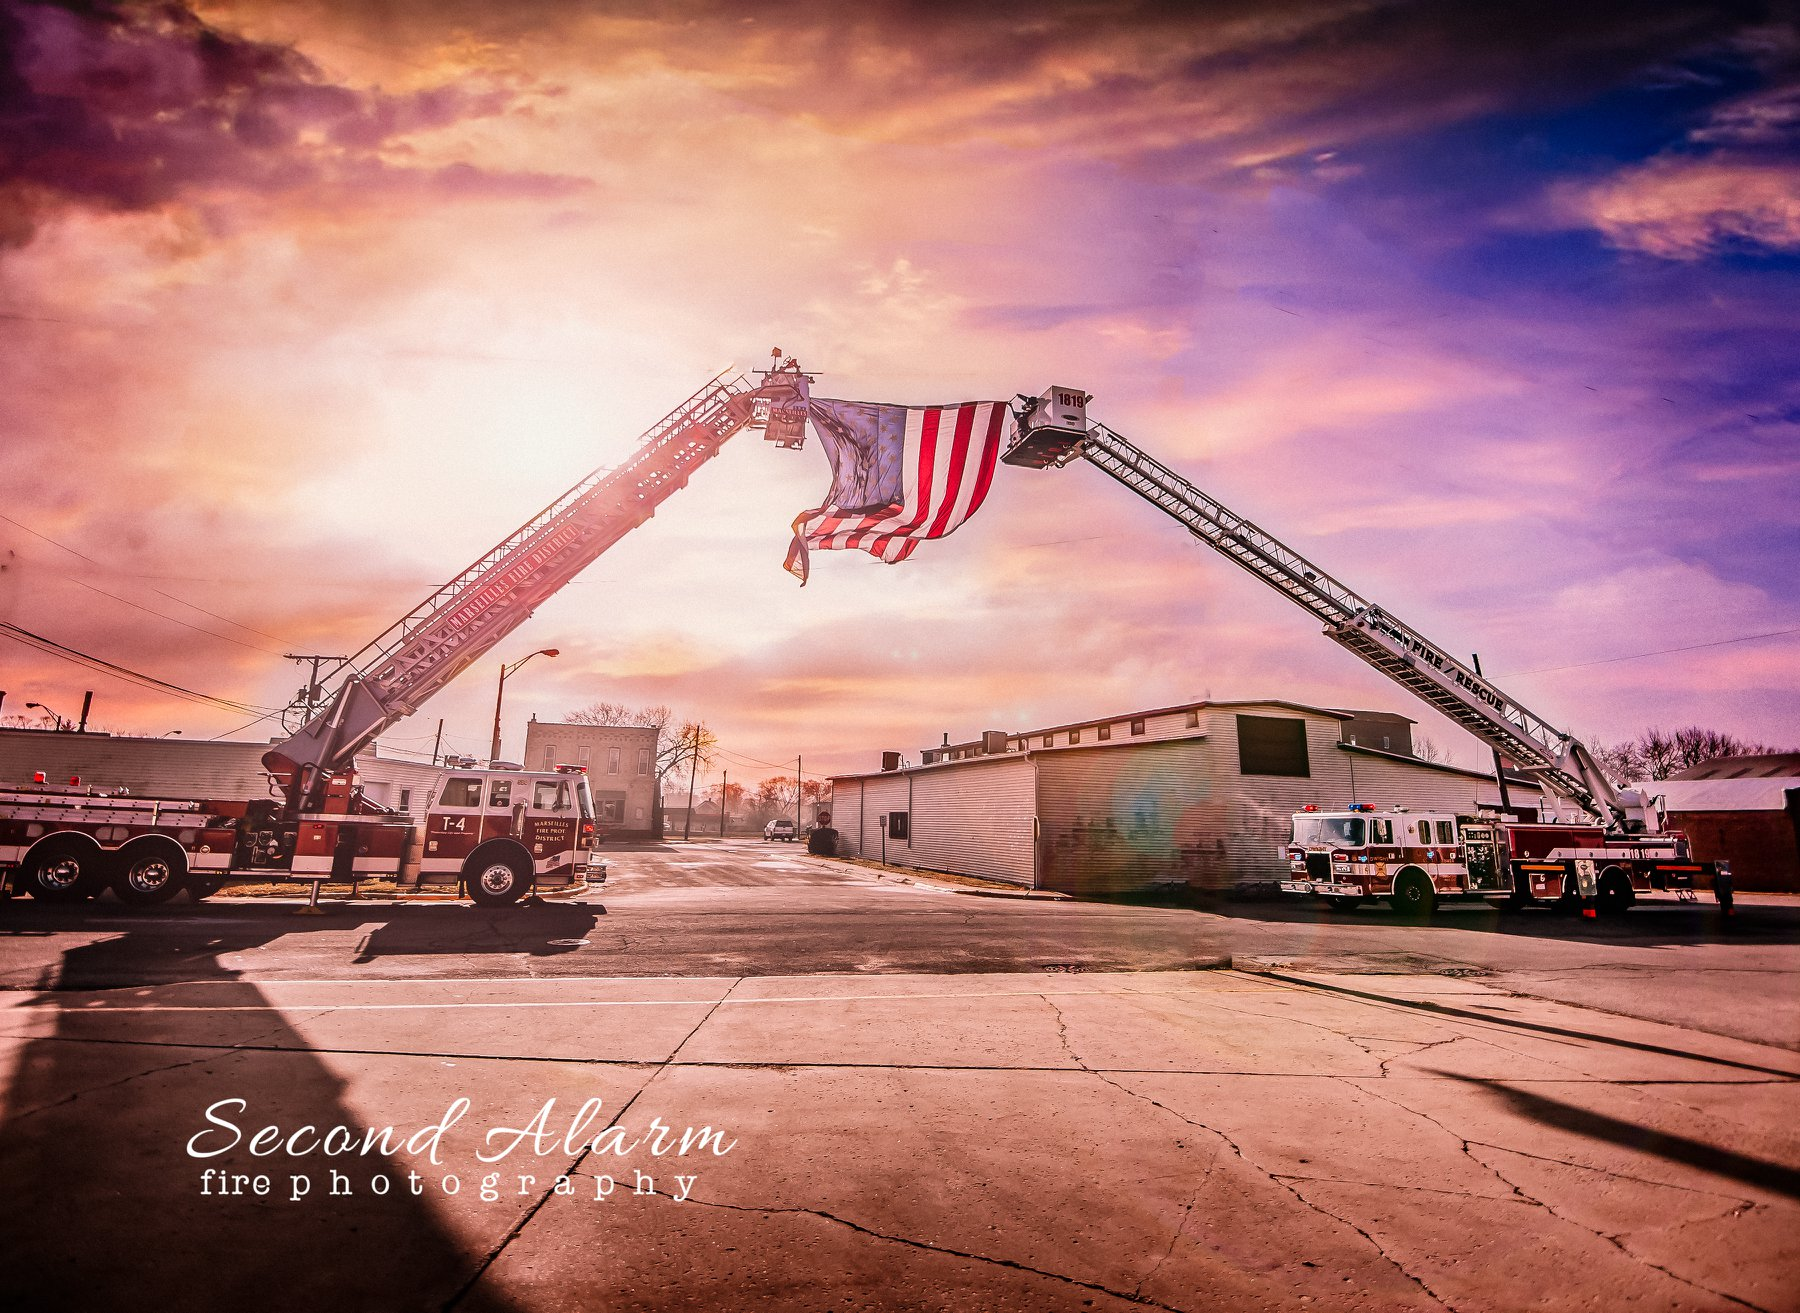 The Last Alarm For Retired Fire Chief Jerry Sears – Got Your